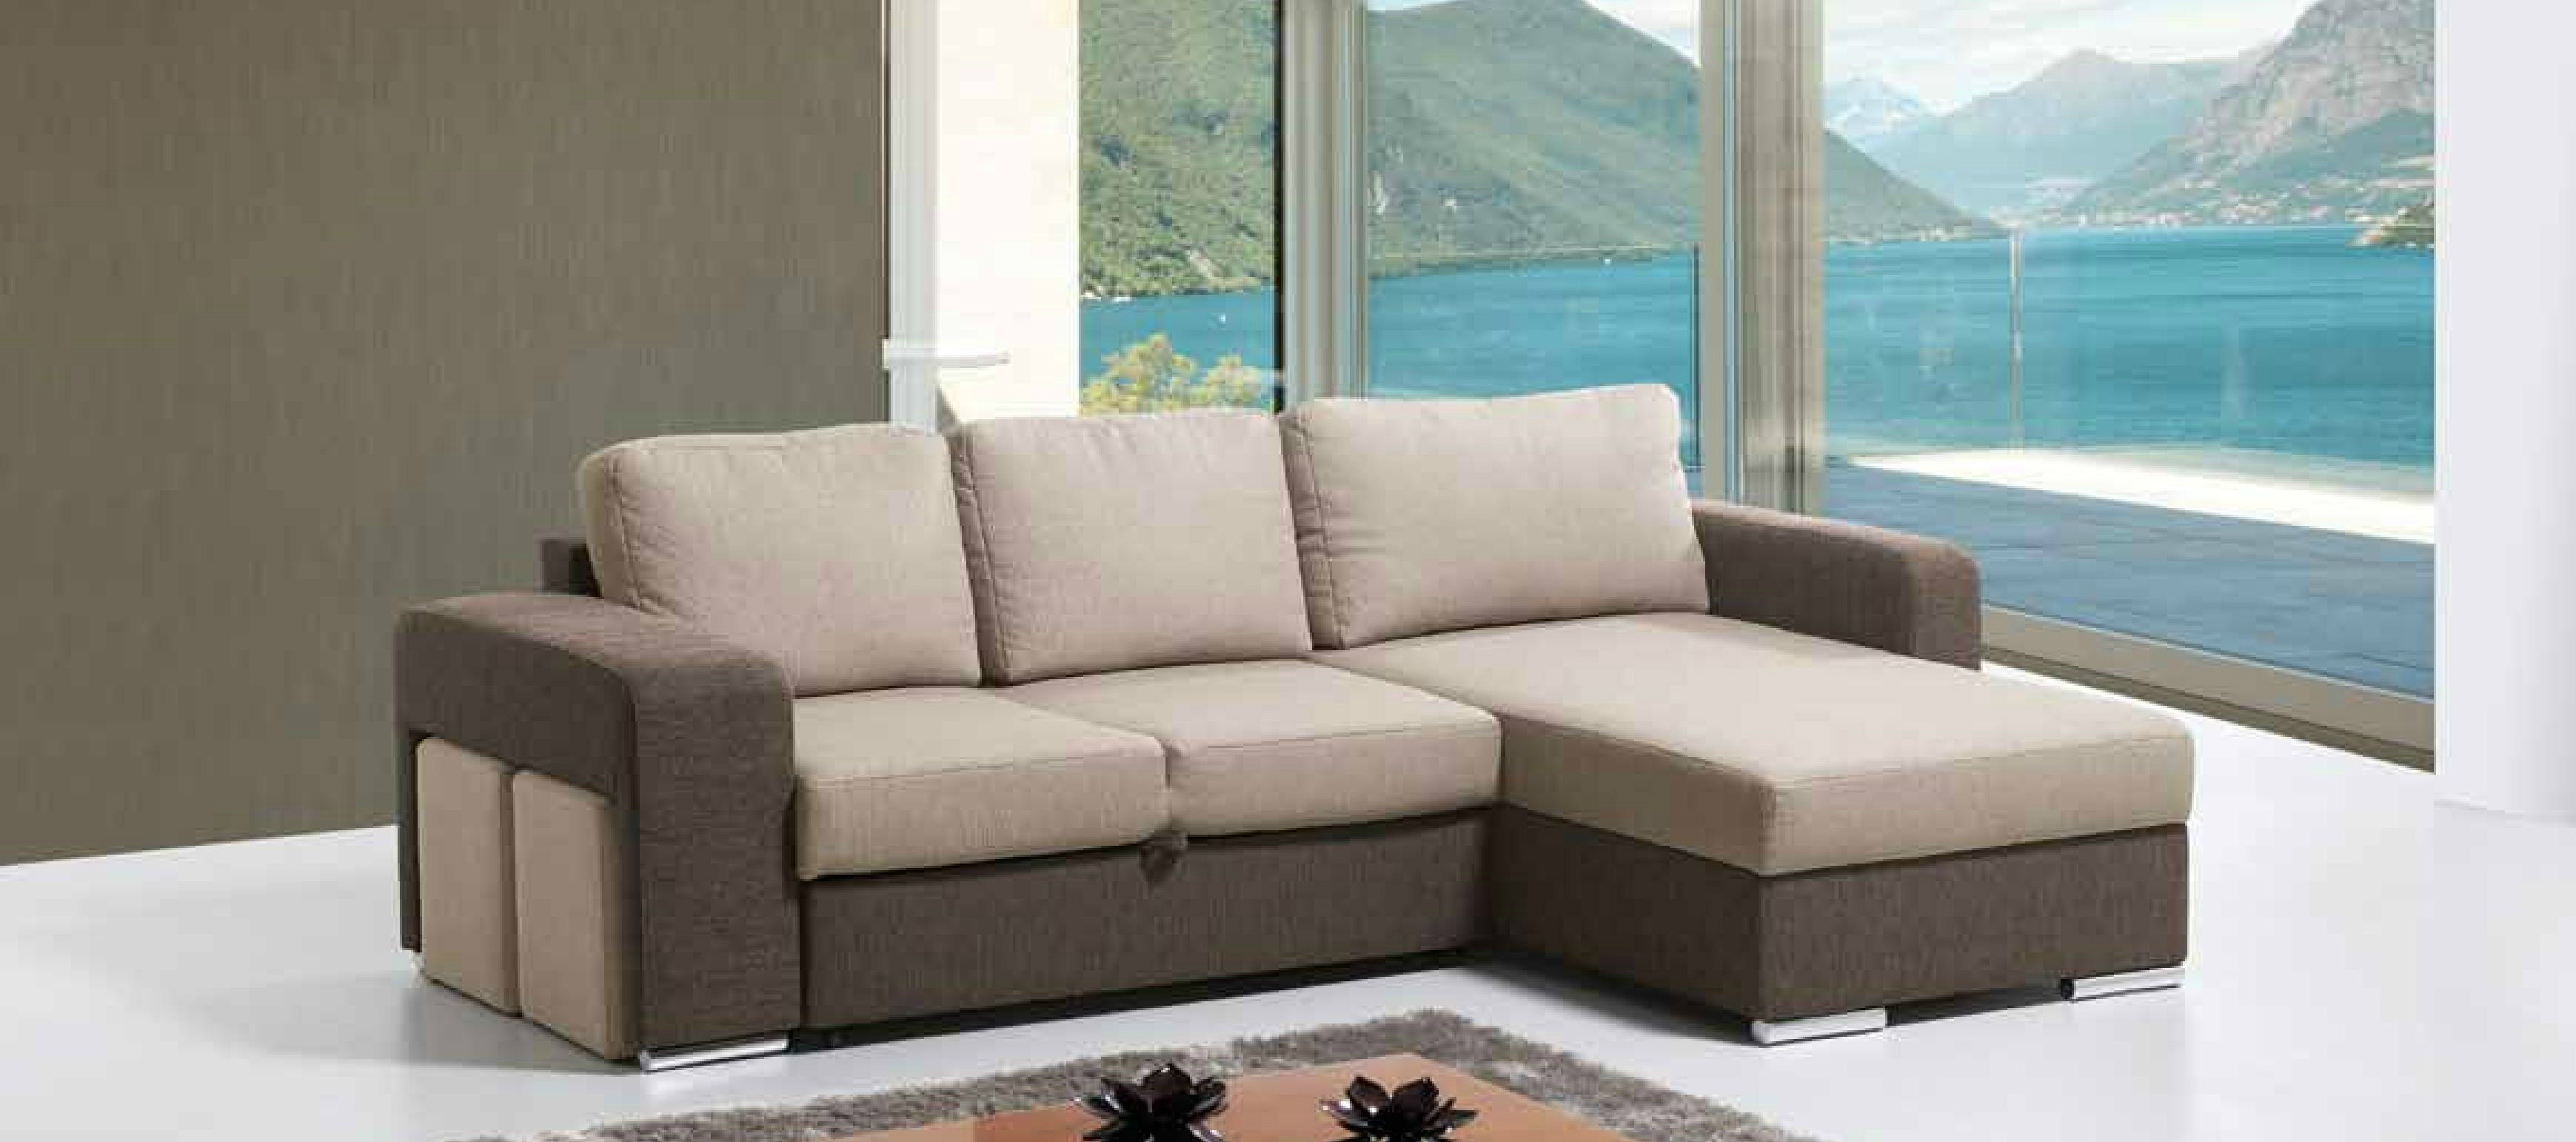 Sofa chaise longue pequeo trendy sof chaise longue modelo for Sofas con chaise longue